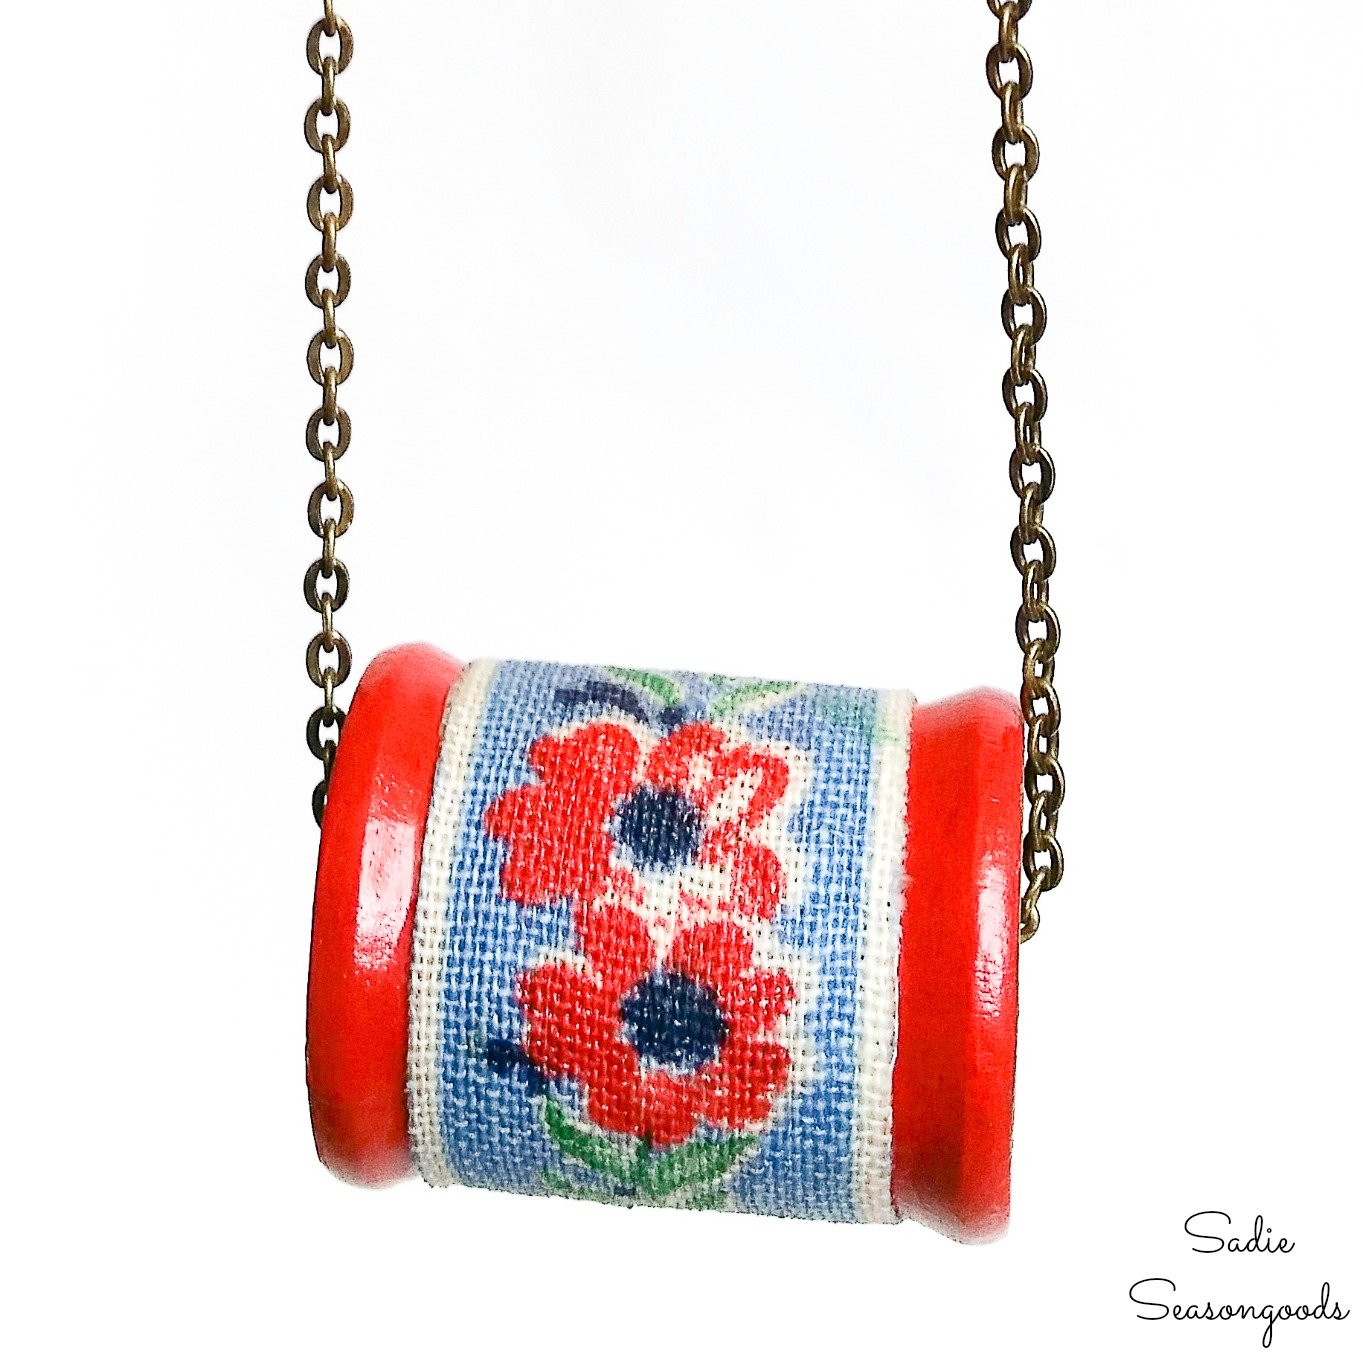 Necklace Making with Vintage Wooden Spools and Flour Sack Fabric